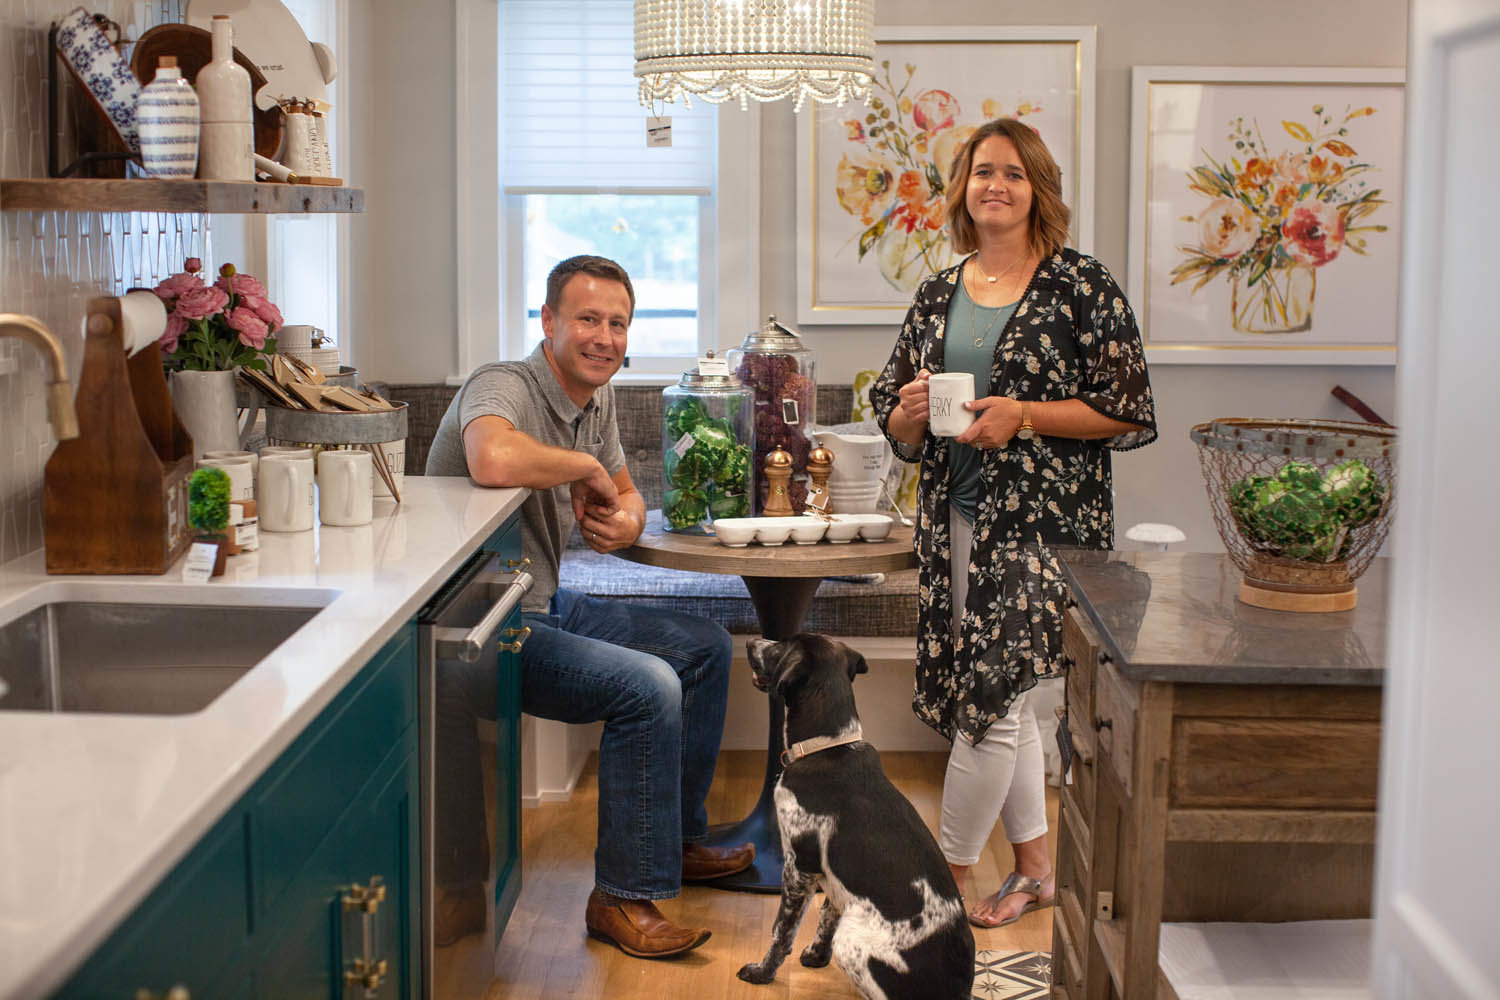 Owners Brady and Haden Long of Ellecor Design and Gifts have settled into the neighborhood.